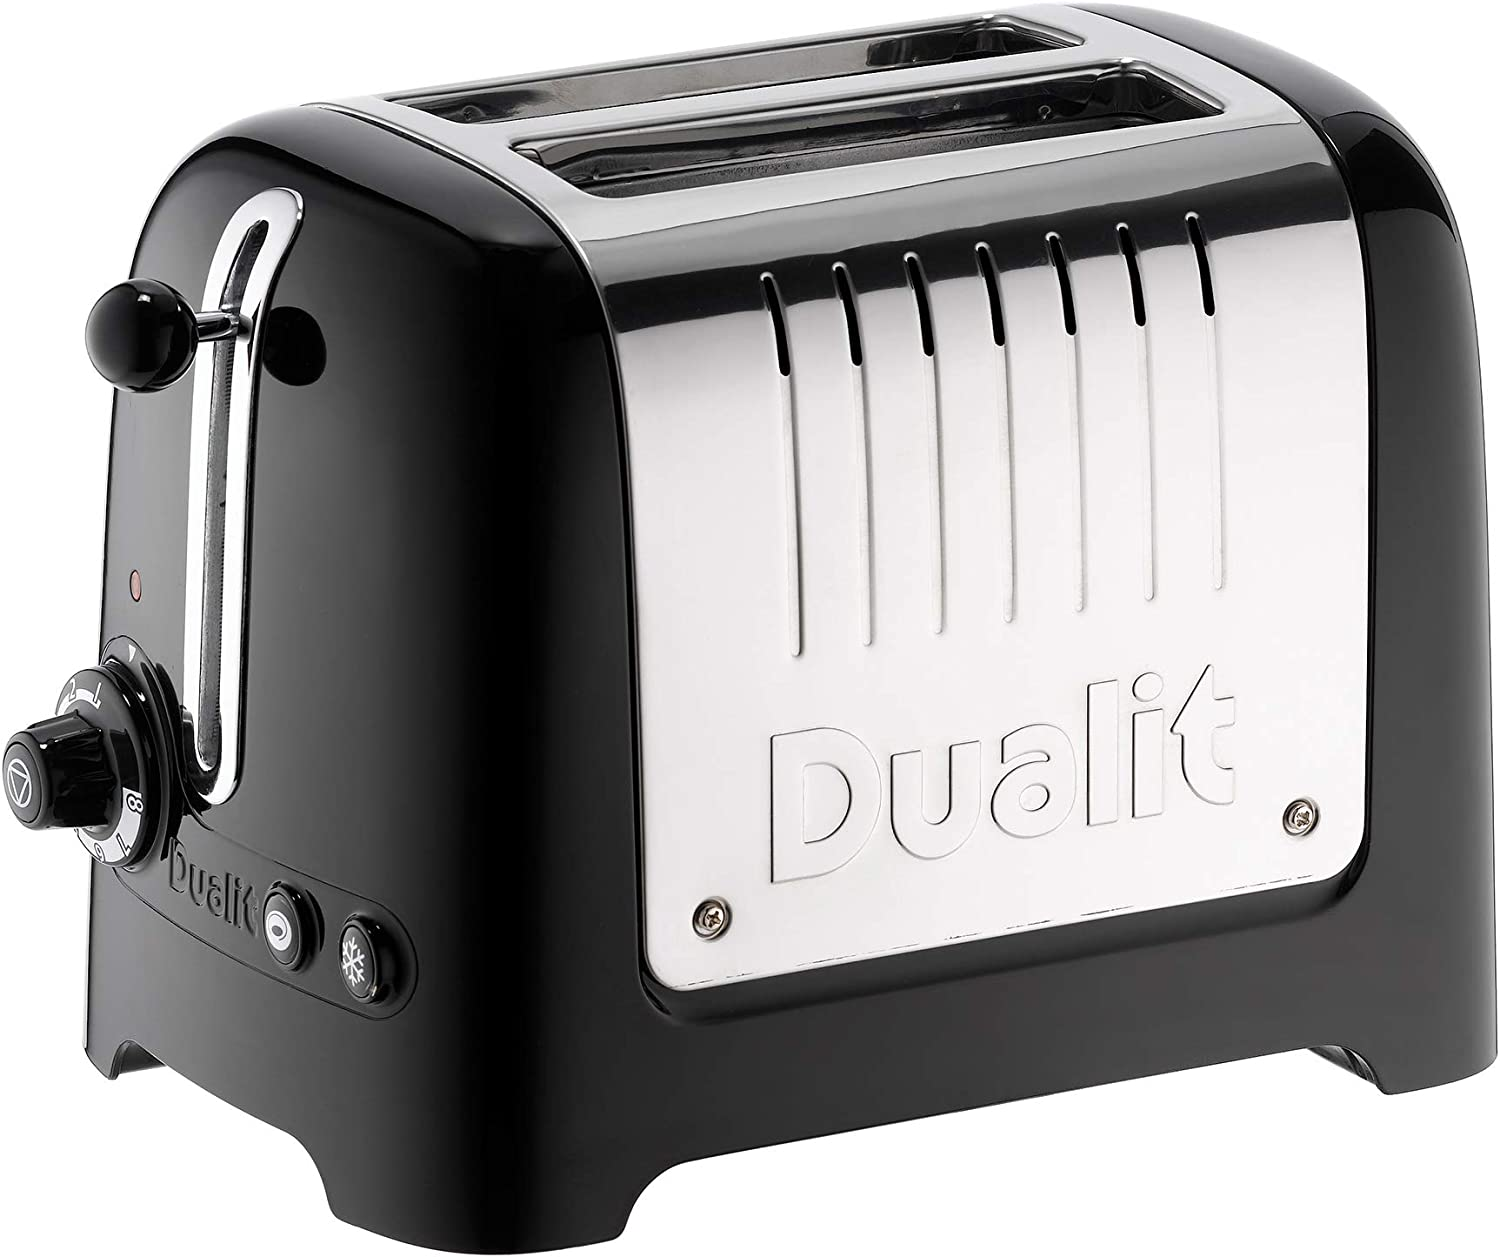 Dualit 2 Slice Lite Toaster   1.1kW Toasts 60 Slices an Hour   Polished with High Gloss Black Trim   Bagel & Defrost Settings   36 mm Wide Slots   26205